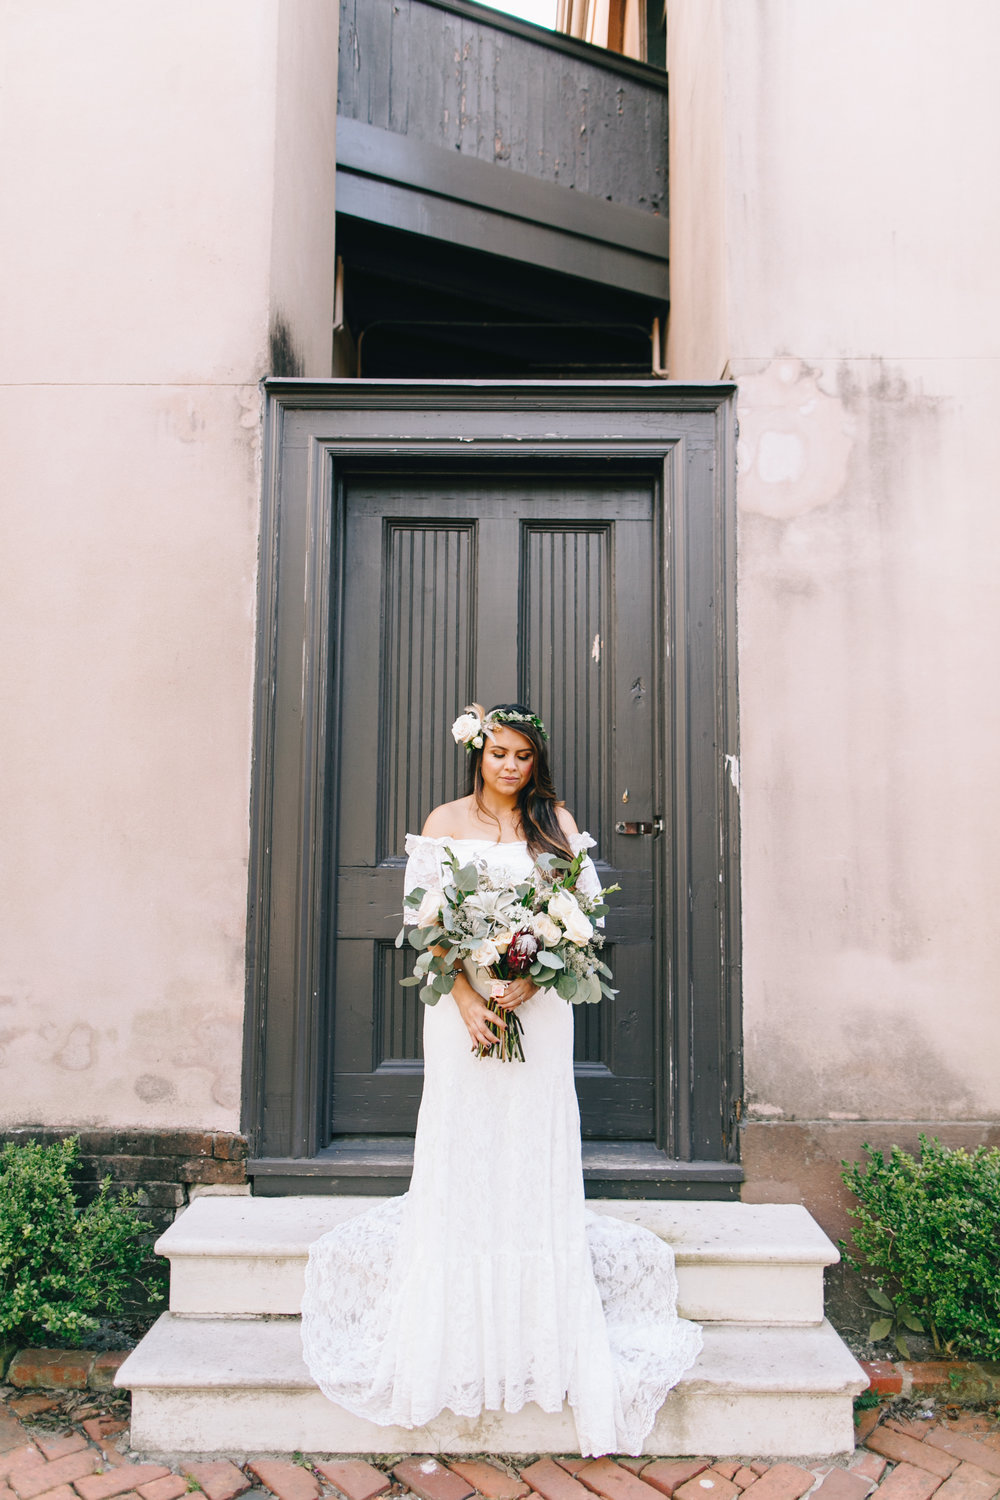 darling-juliet-photography-ivory-and-beau-bridal-boutique-savannah-wedding-dresses-savannah-bridal-gowns-daughters-of-simone-winnie-savannah-florist-boho-wedding-savannah-boho-wedding-roundhouse-railroad-musuem-wedding-12.jpg